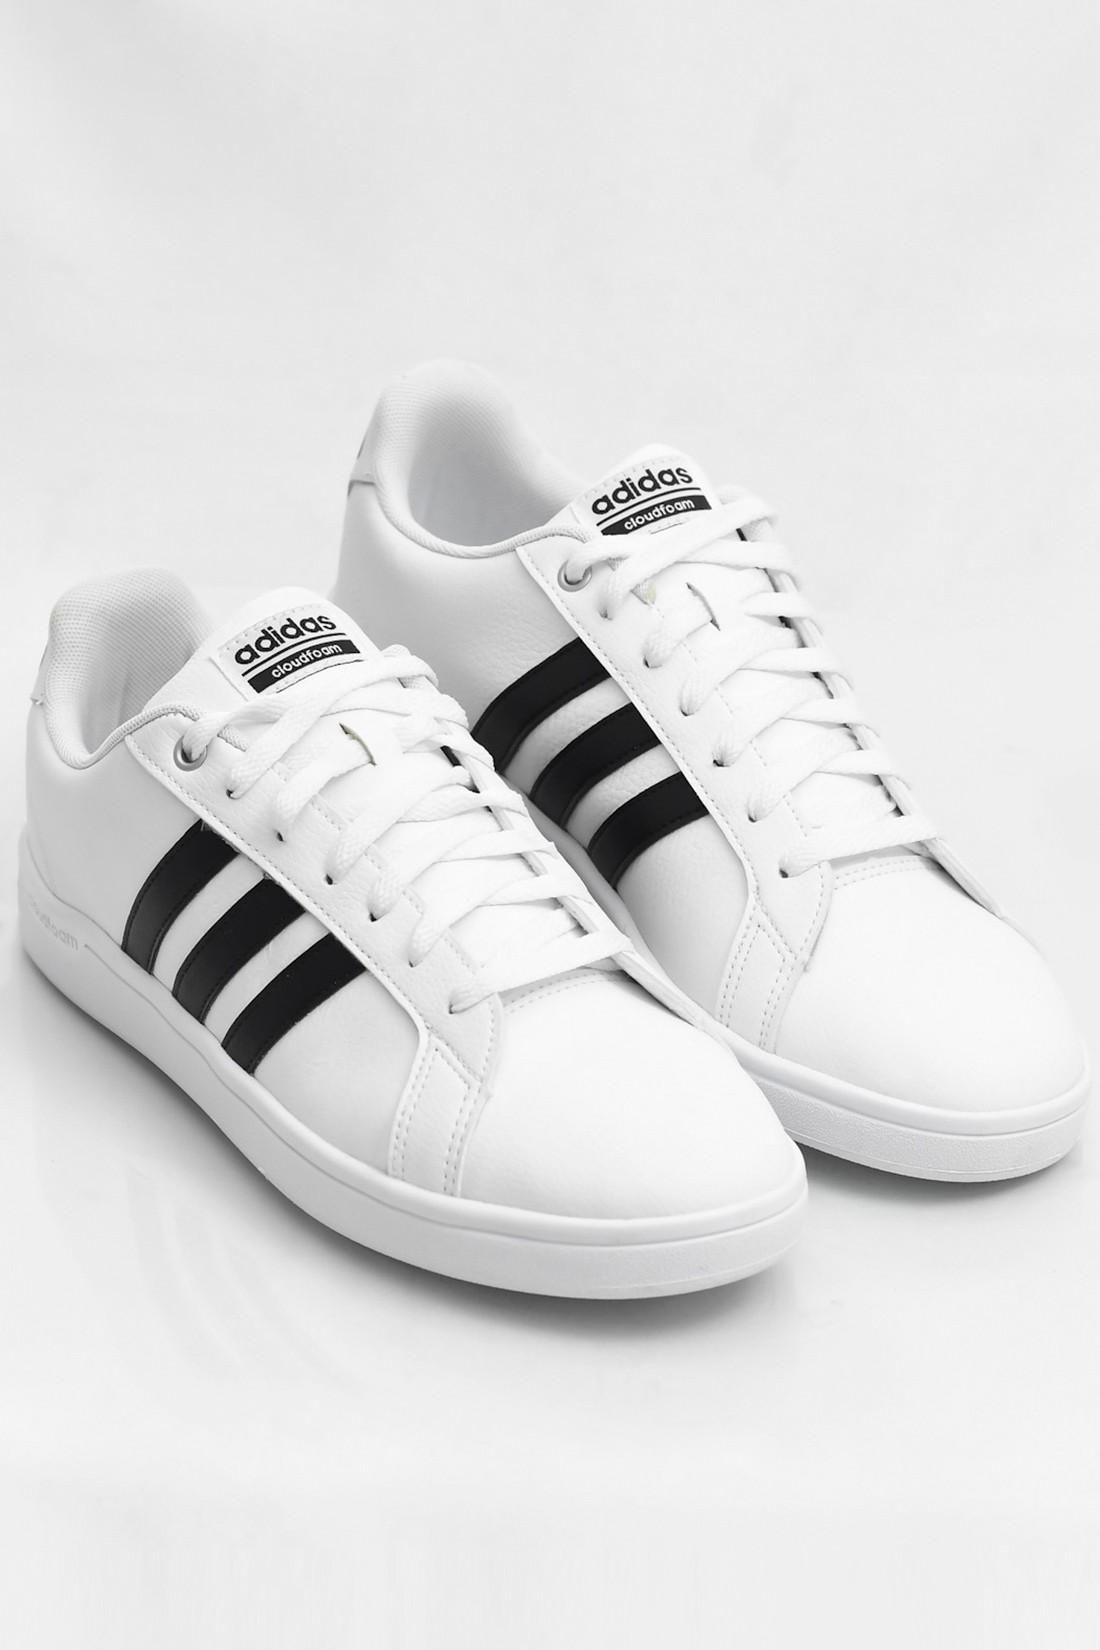 Tenis Casual Adidas Cf Advantage